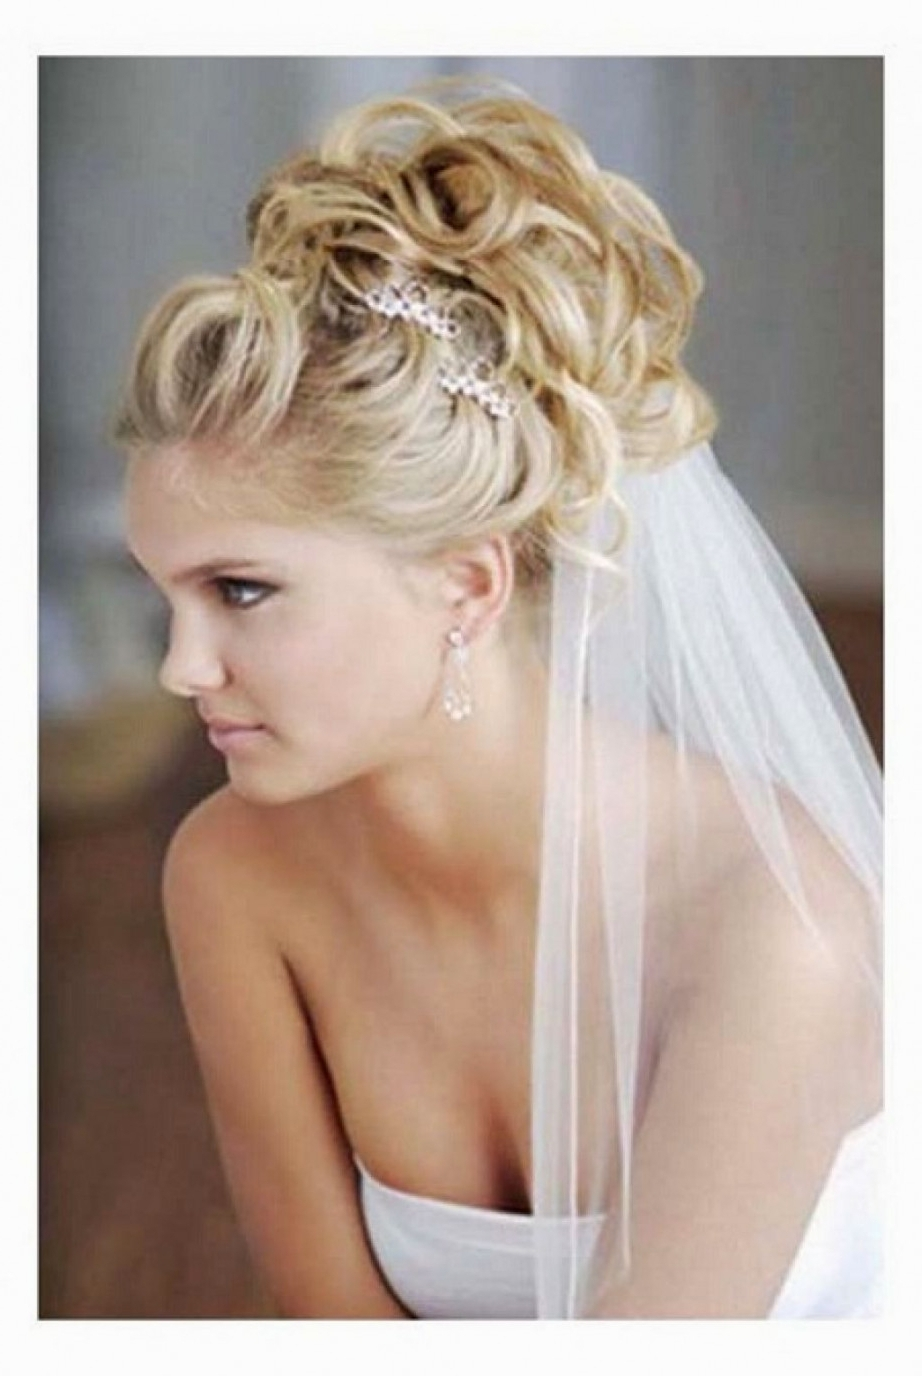 Wedding Bun Hairstyles With Veil | Hairstyles Ideas | Latest Inside Wedding Updo Hairstyles With Veil (View 5 of 15)